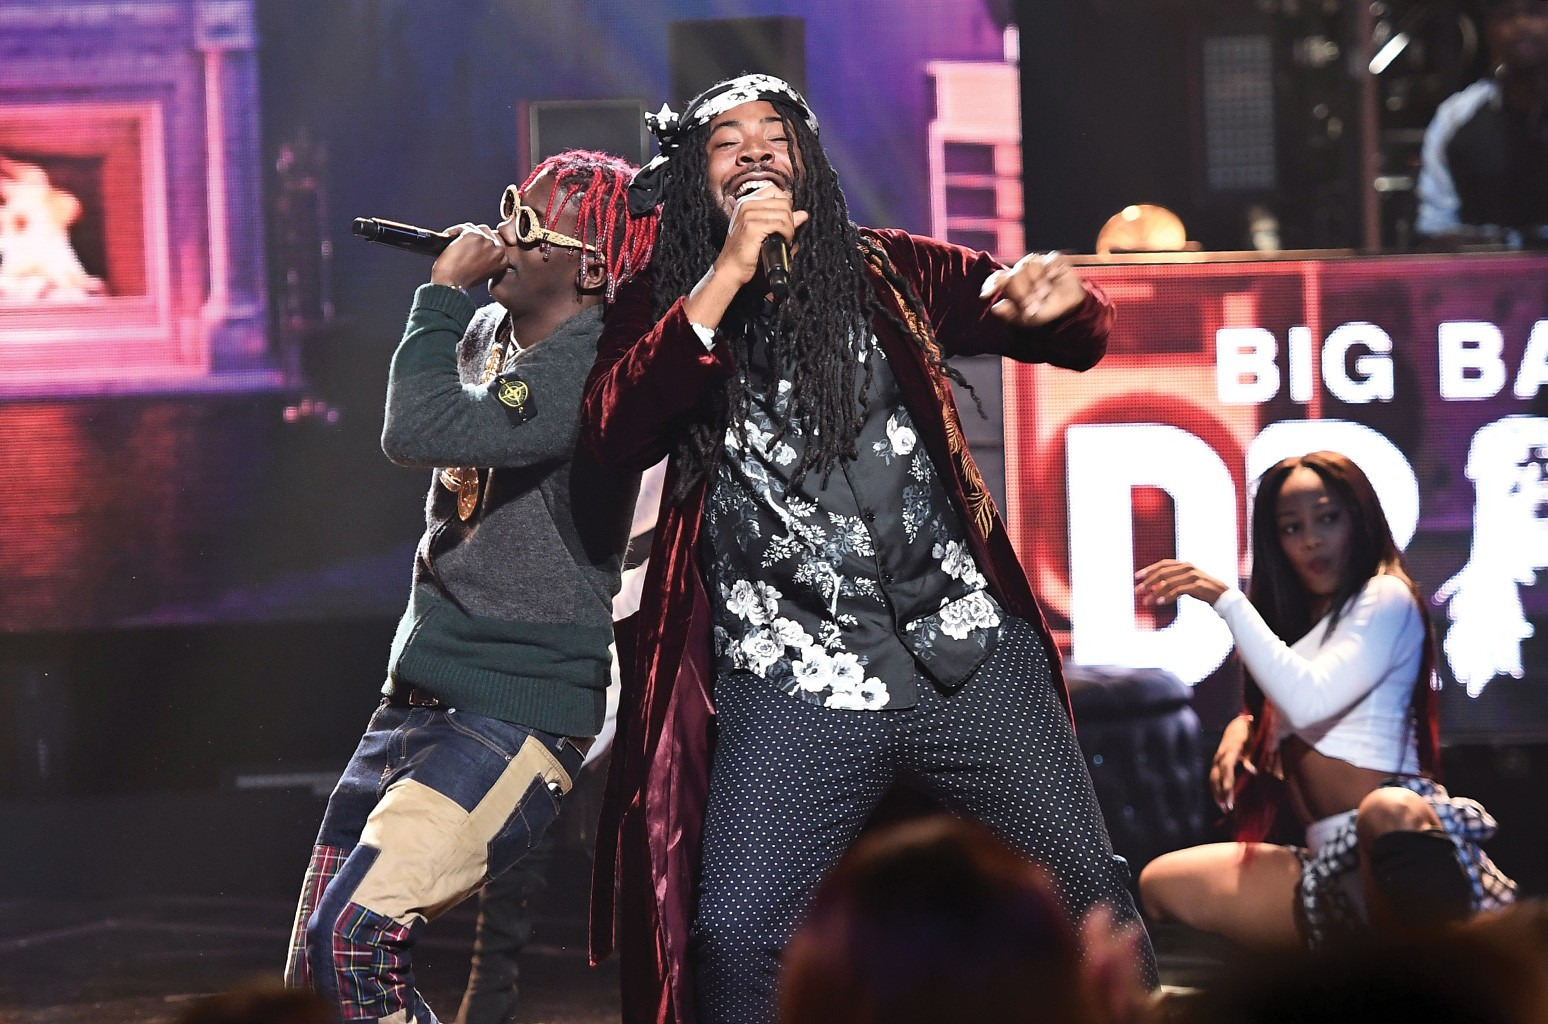 D.R.A.M and Lil Yachty performs onstage during the 2016 BET Hip Hop Awards at Cobb Energy Performing Arts Center on Sept. 17, 2016 in Atlanta.